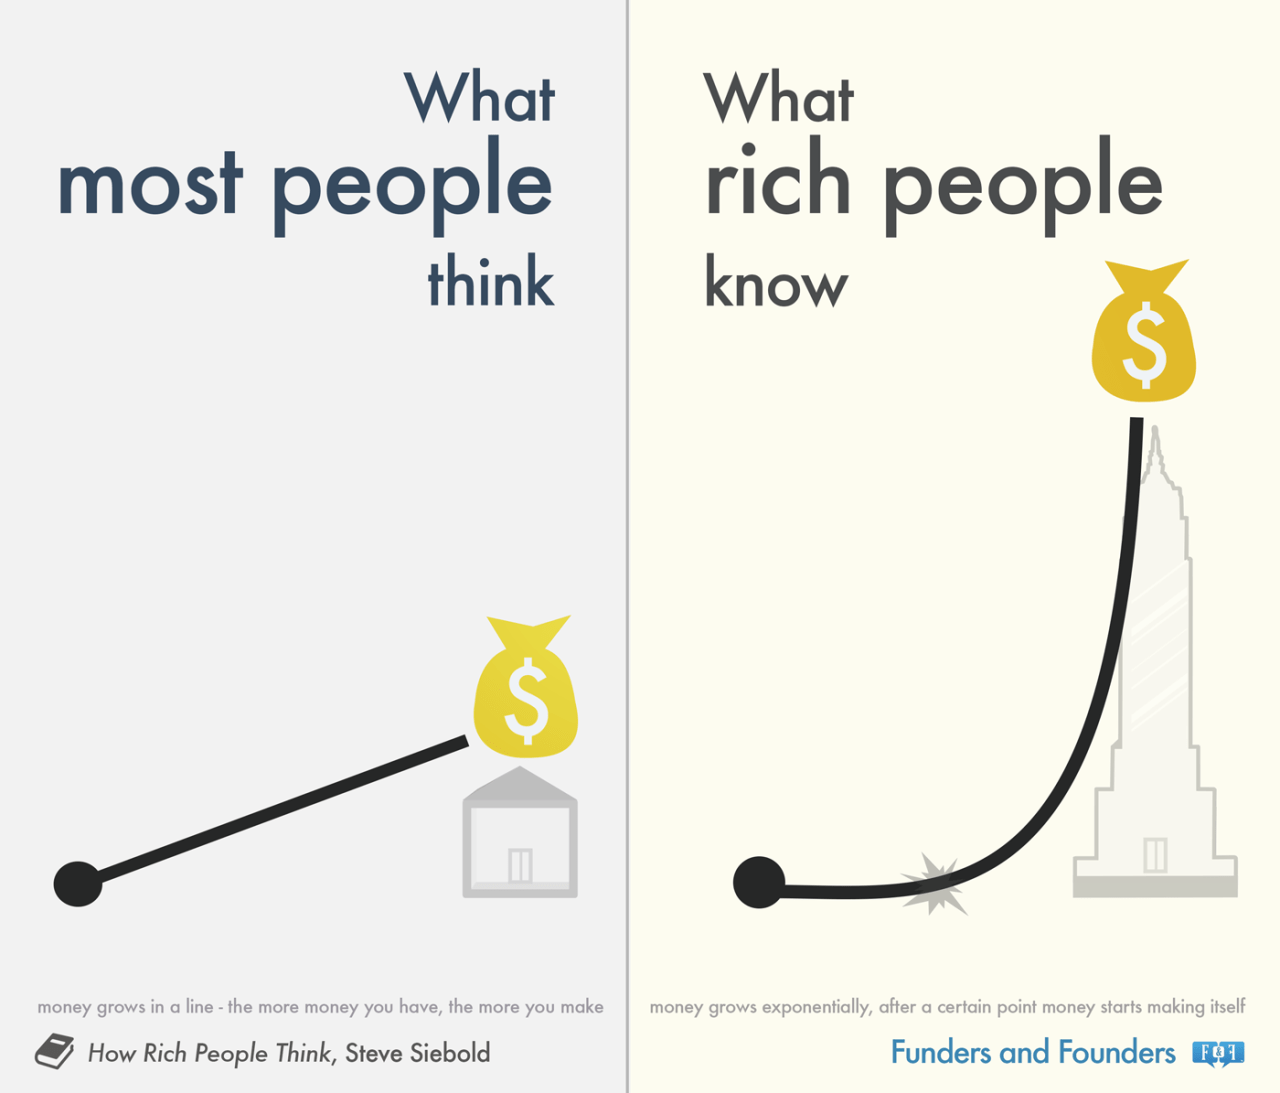 What distinguishes a poor person from a wealthy person?